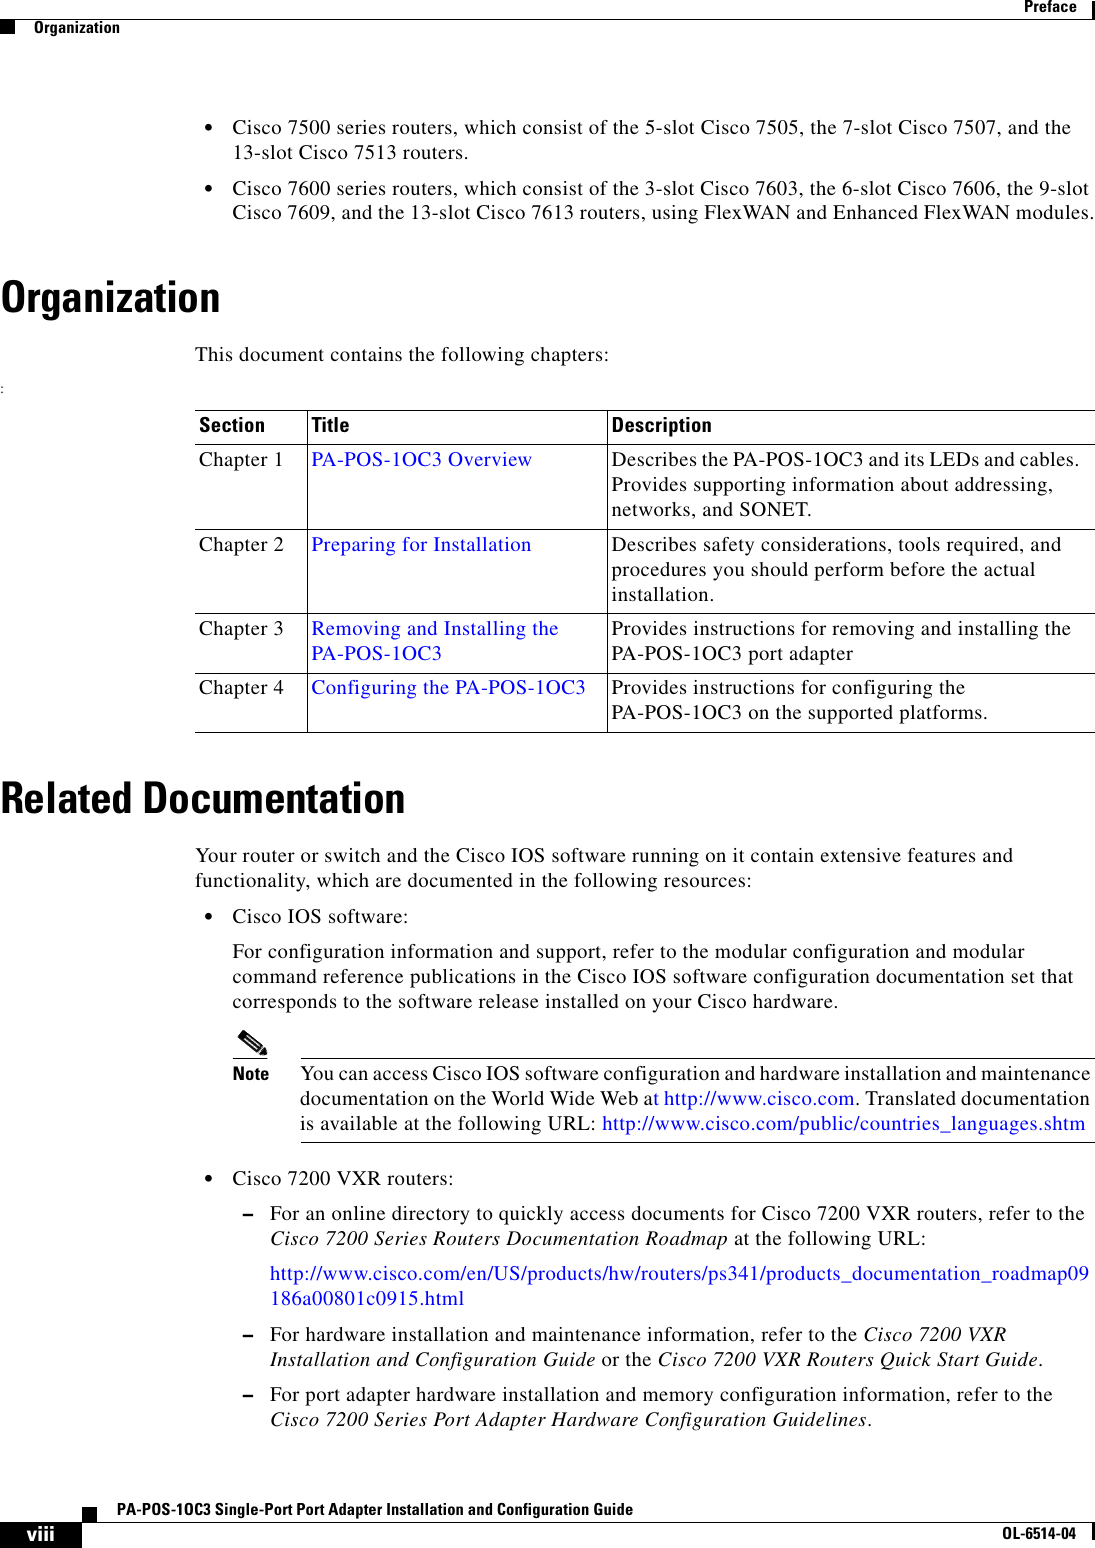 Cisco Systems Pa Pos 1Oc3 Installation And Configuration Guide